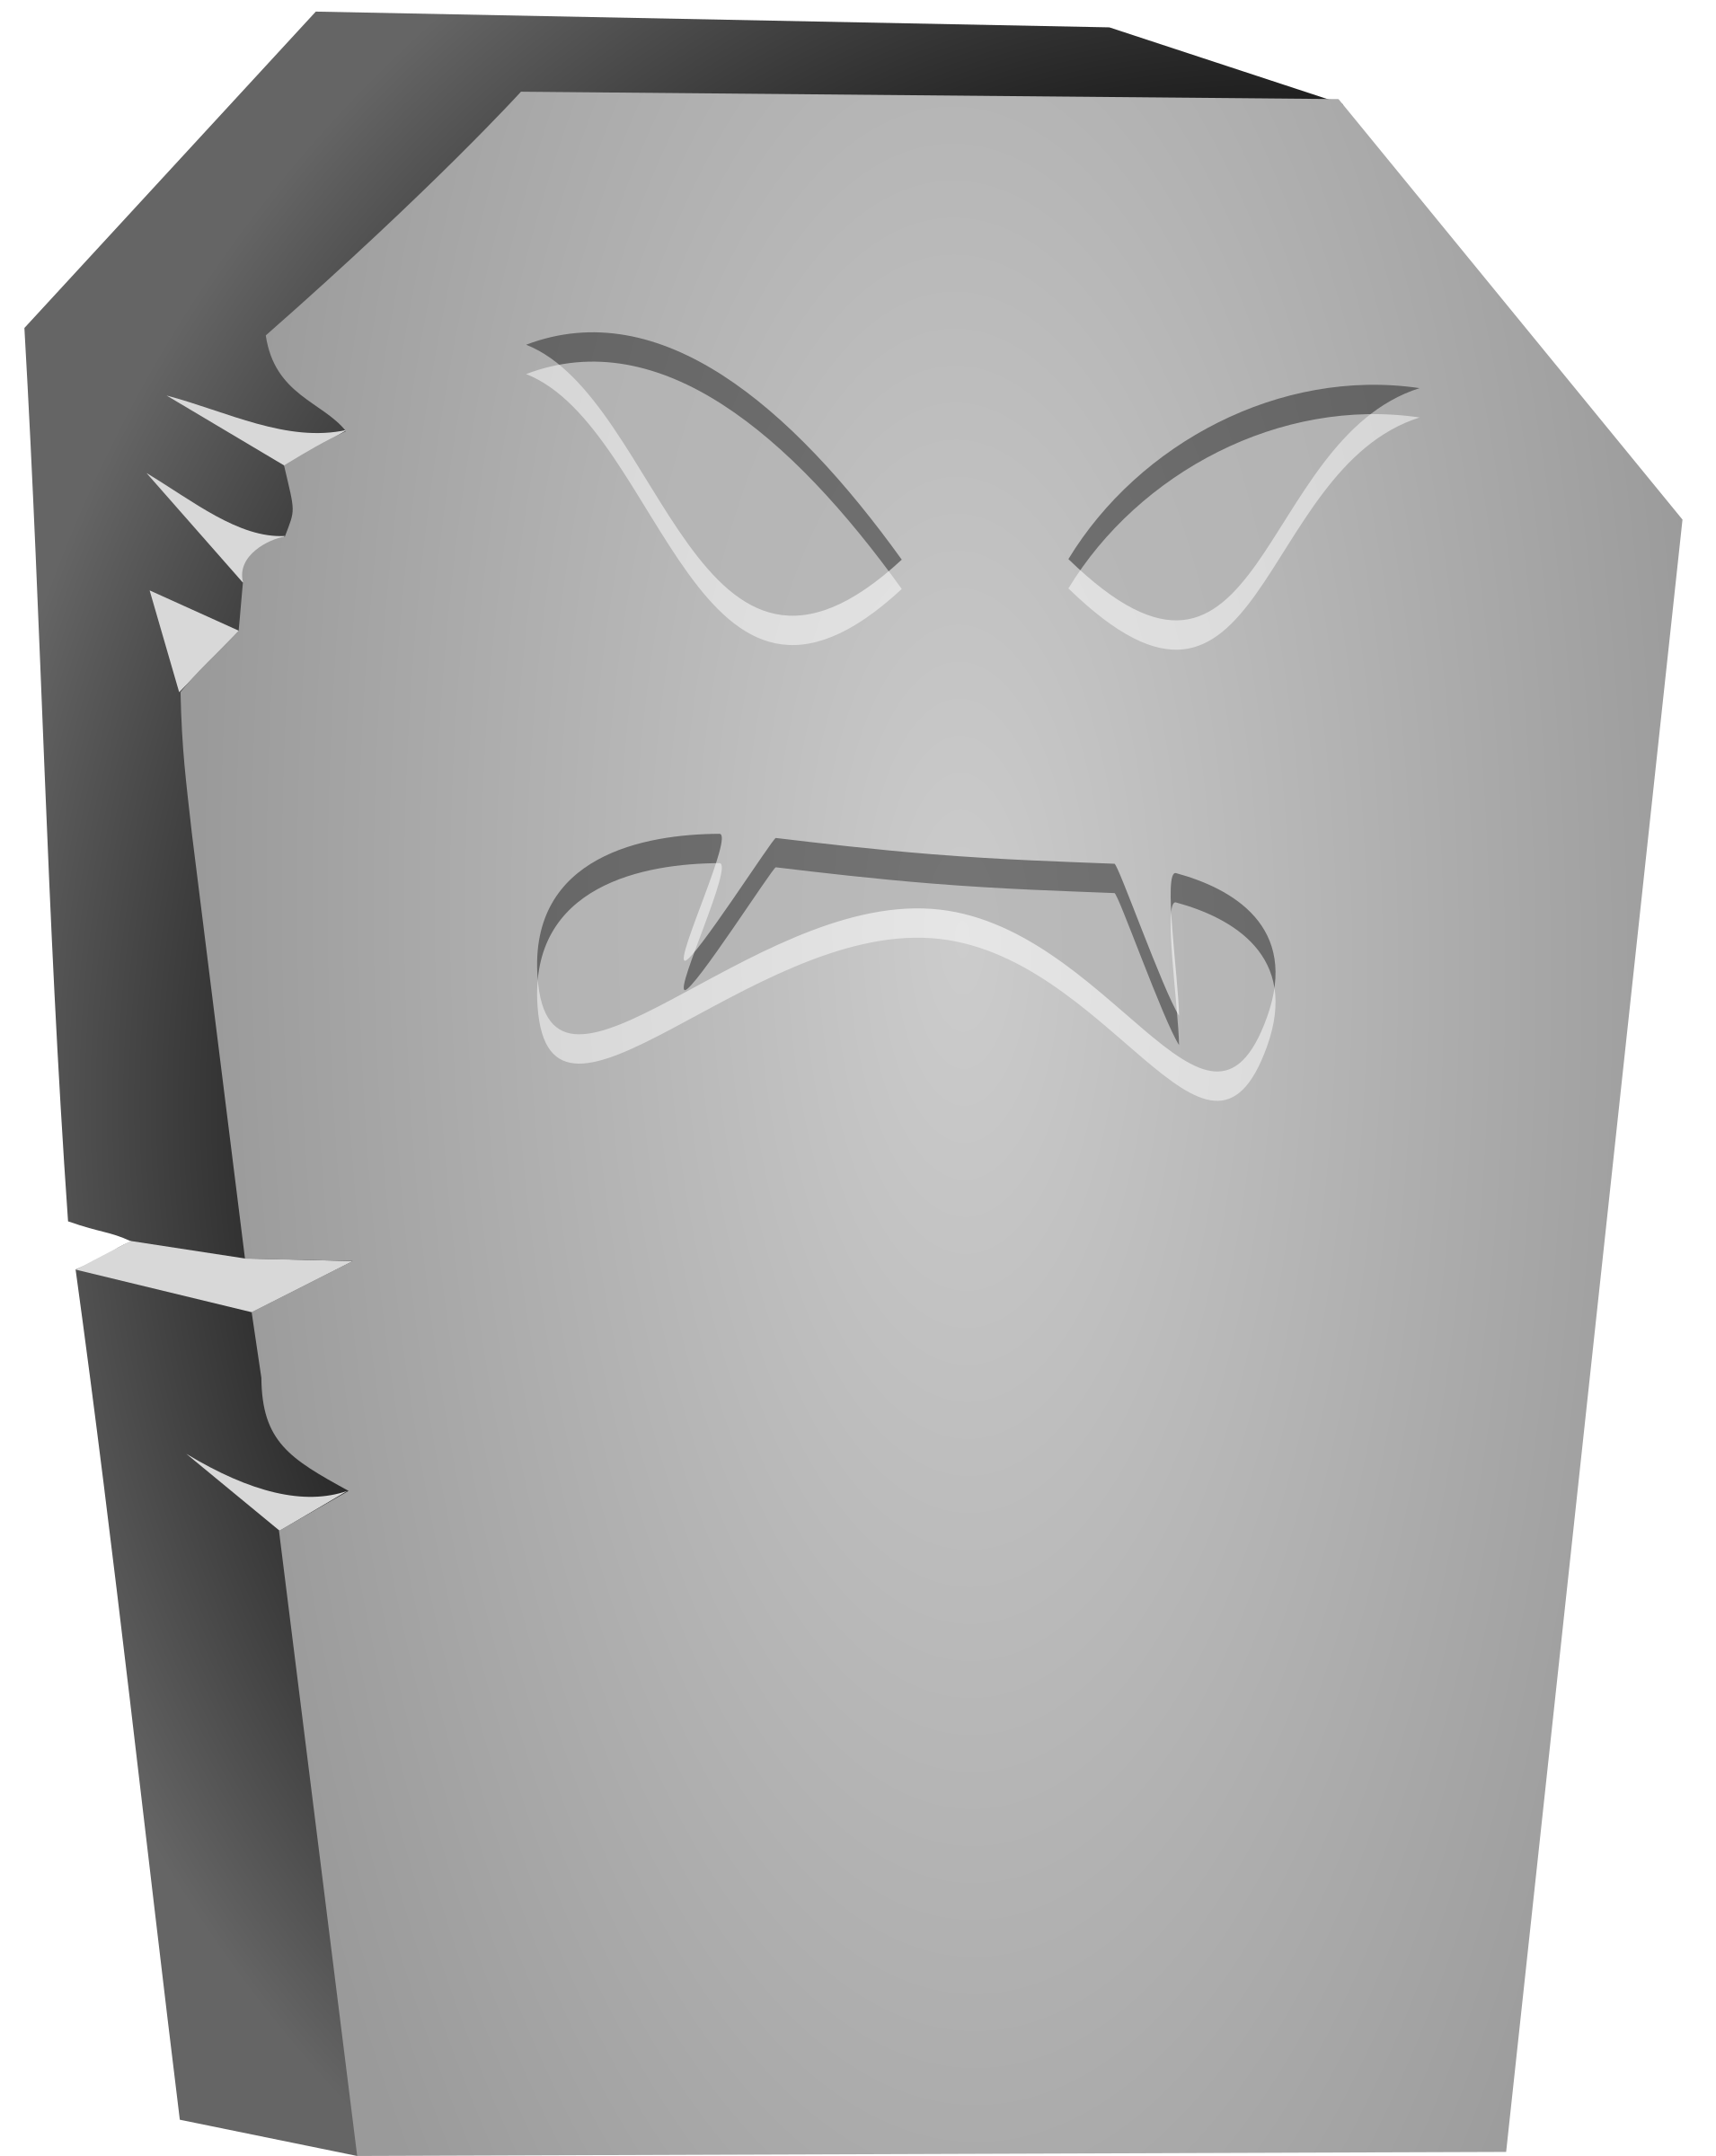 Tombstone .png. Halloween angry face icons